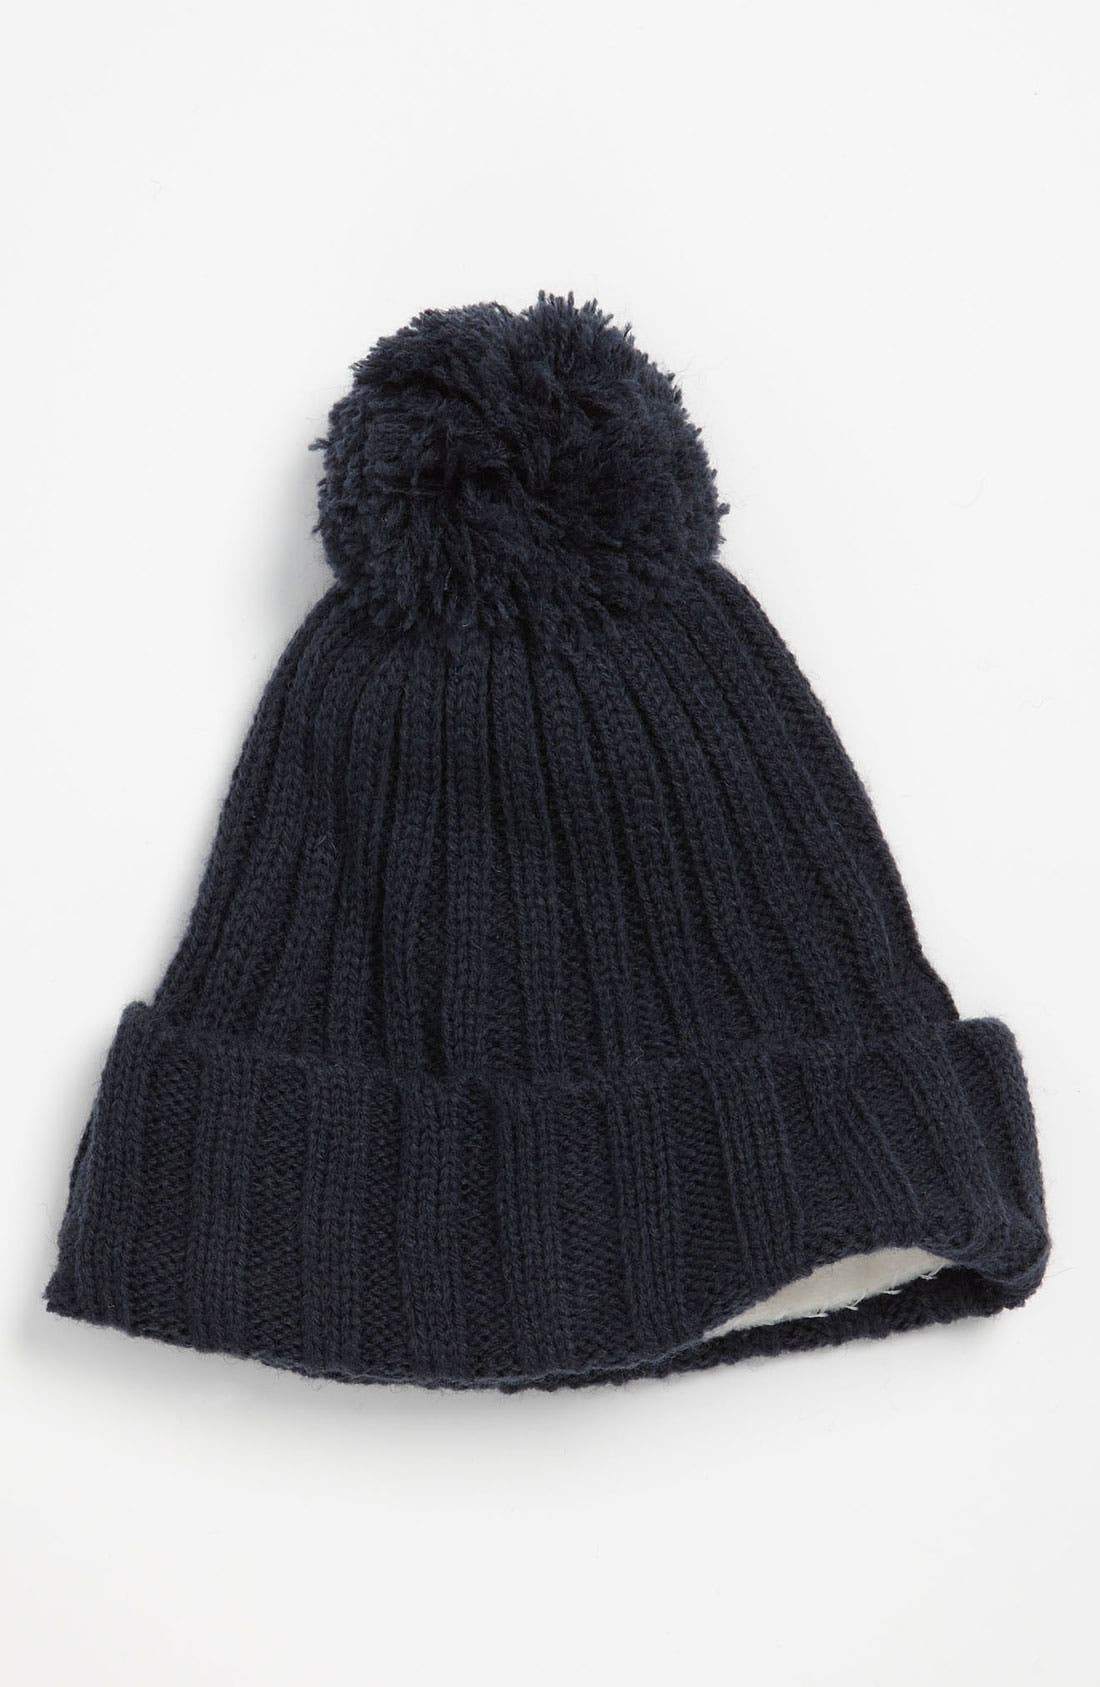 Main Image - United Colors of Benetton Kids Lined Hat (Infant)